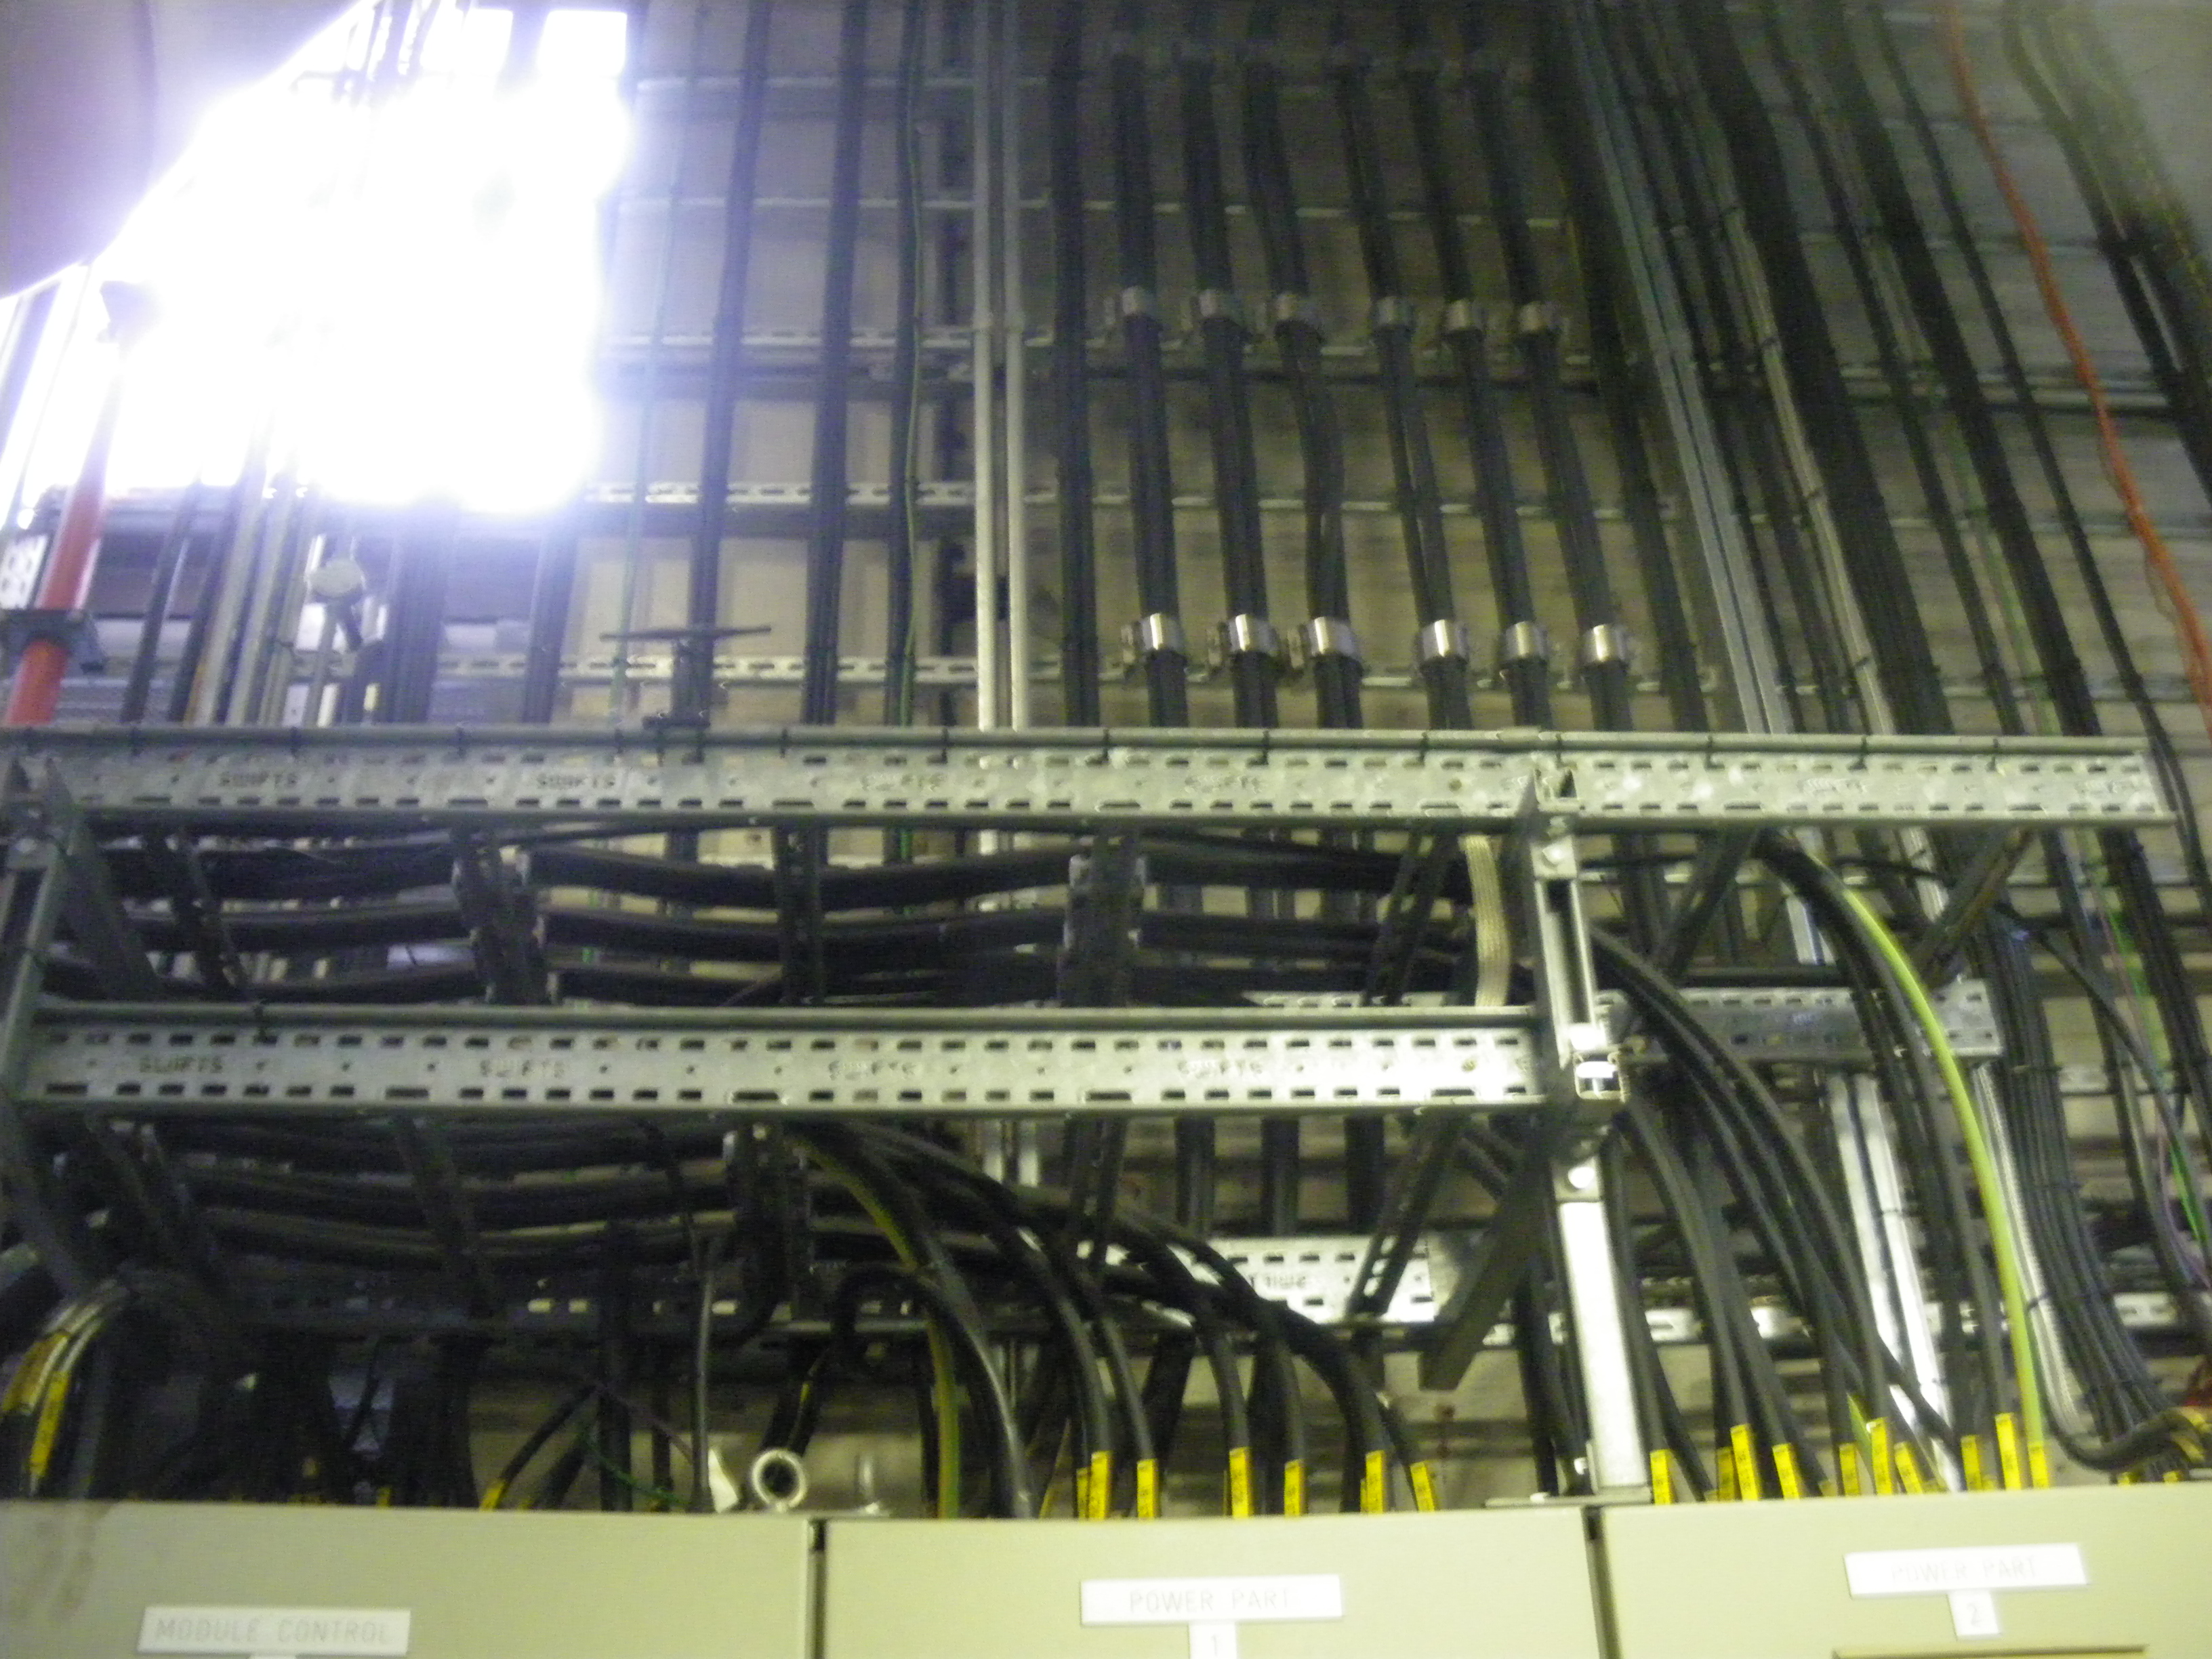 Wiring loom above CHP control panel